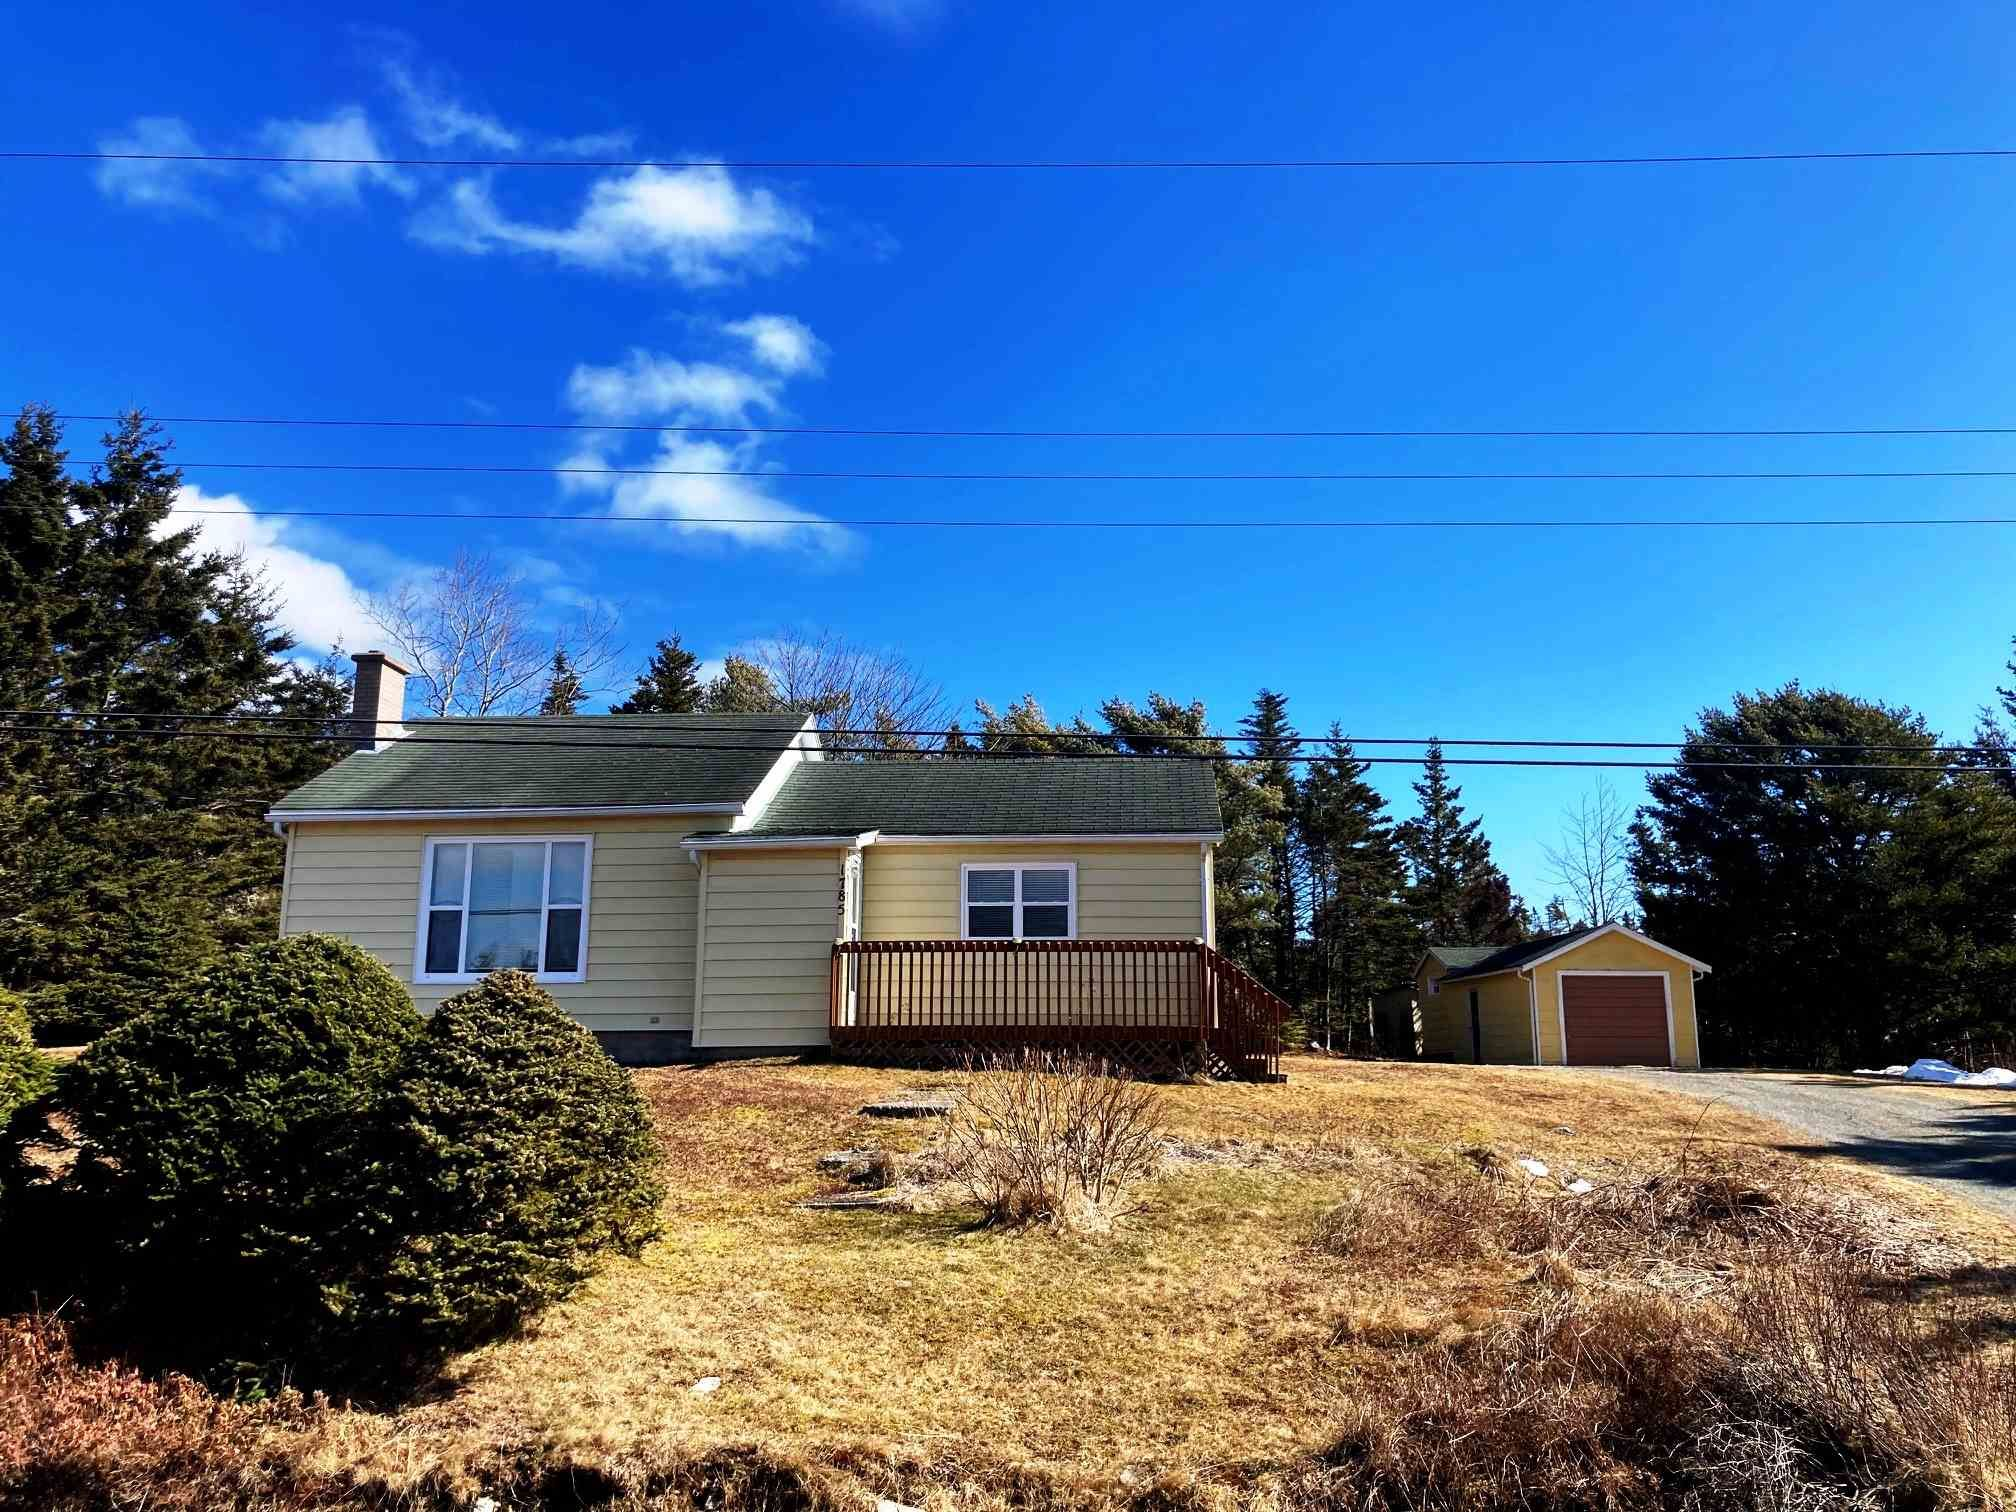 Main Photo: 1785 East Jeddore Road in East Jeddore: 35-Halifax County East Residential for sale (Halifax-Dartmouth)  : MLS®# 202104256